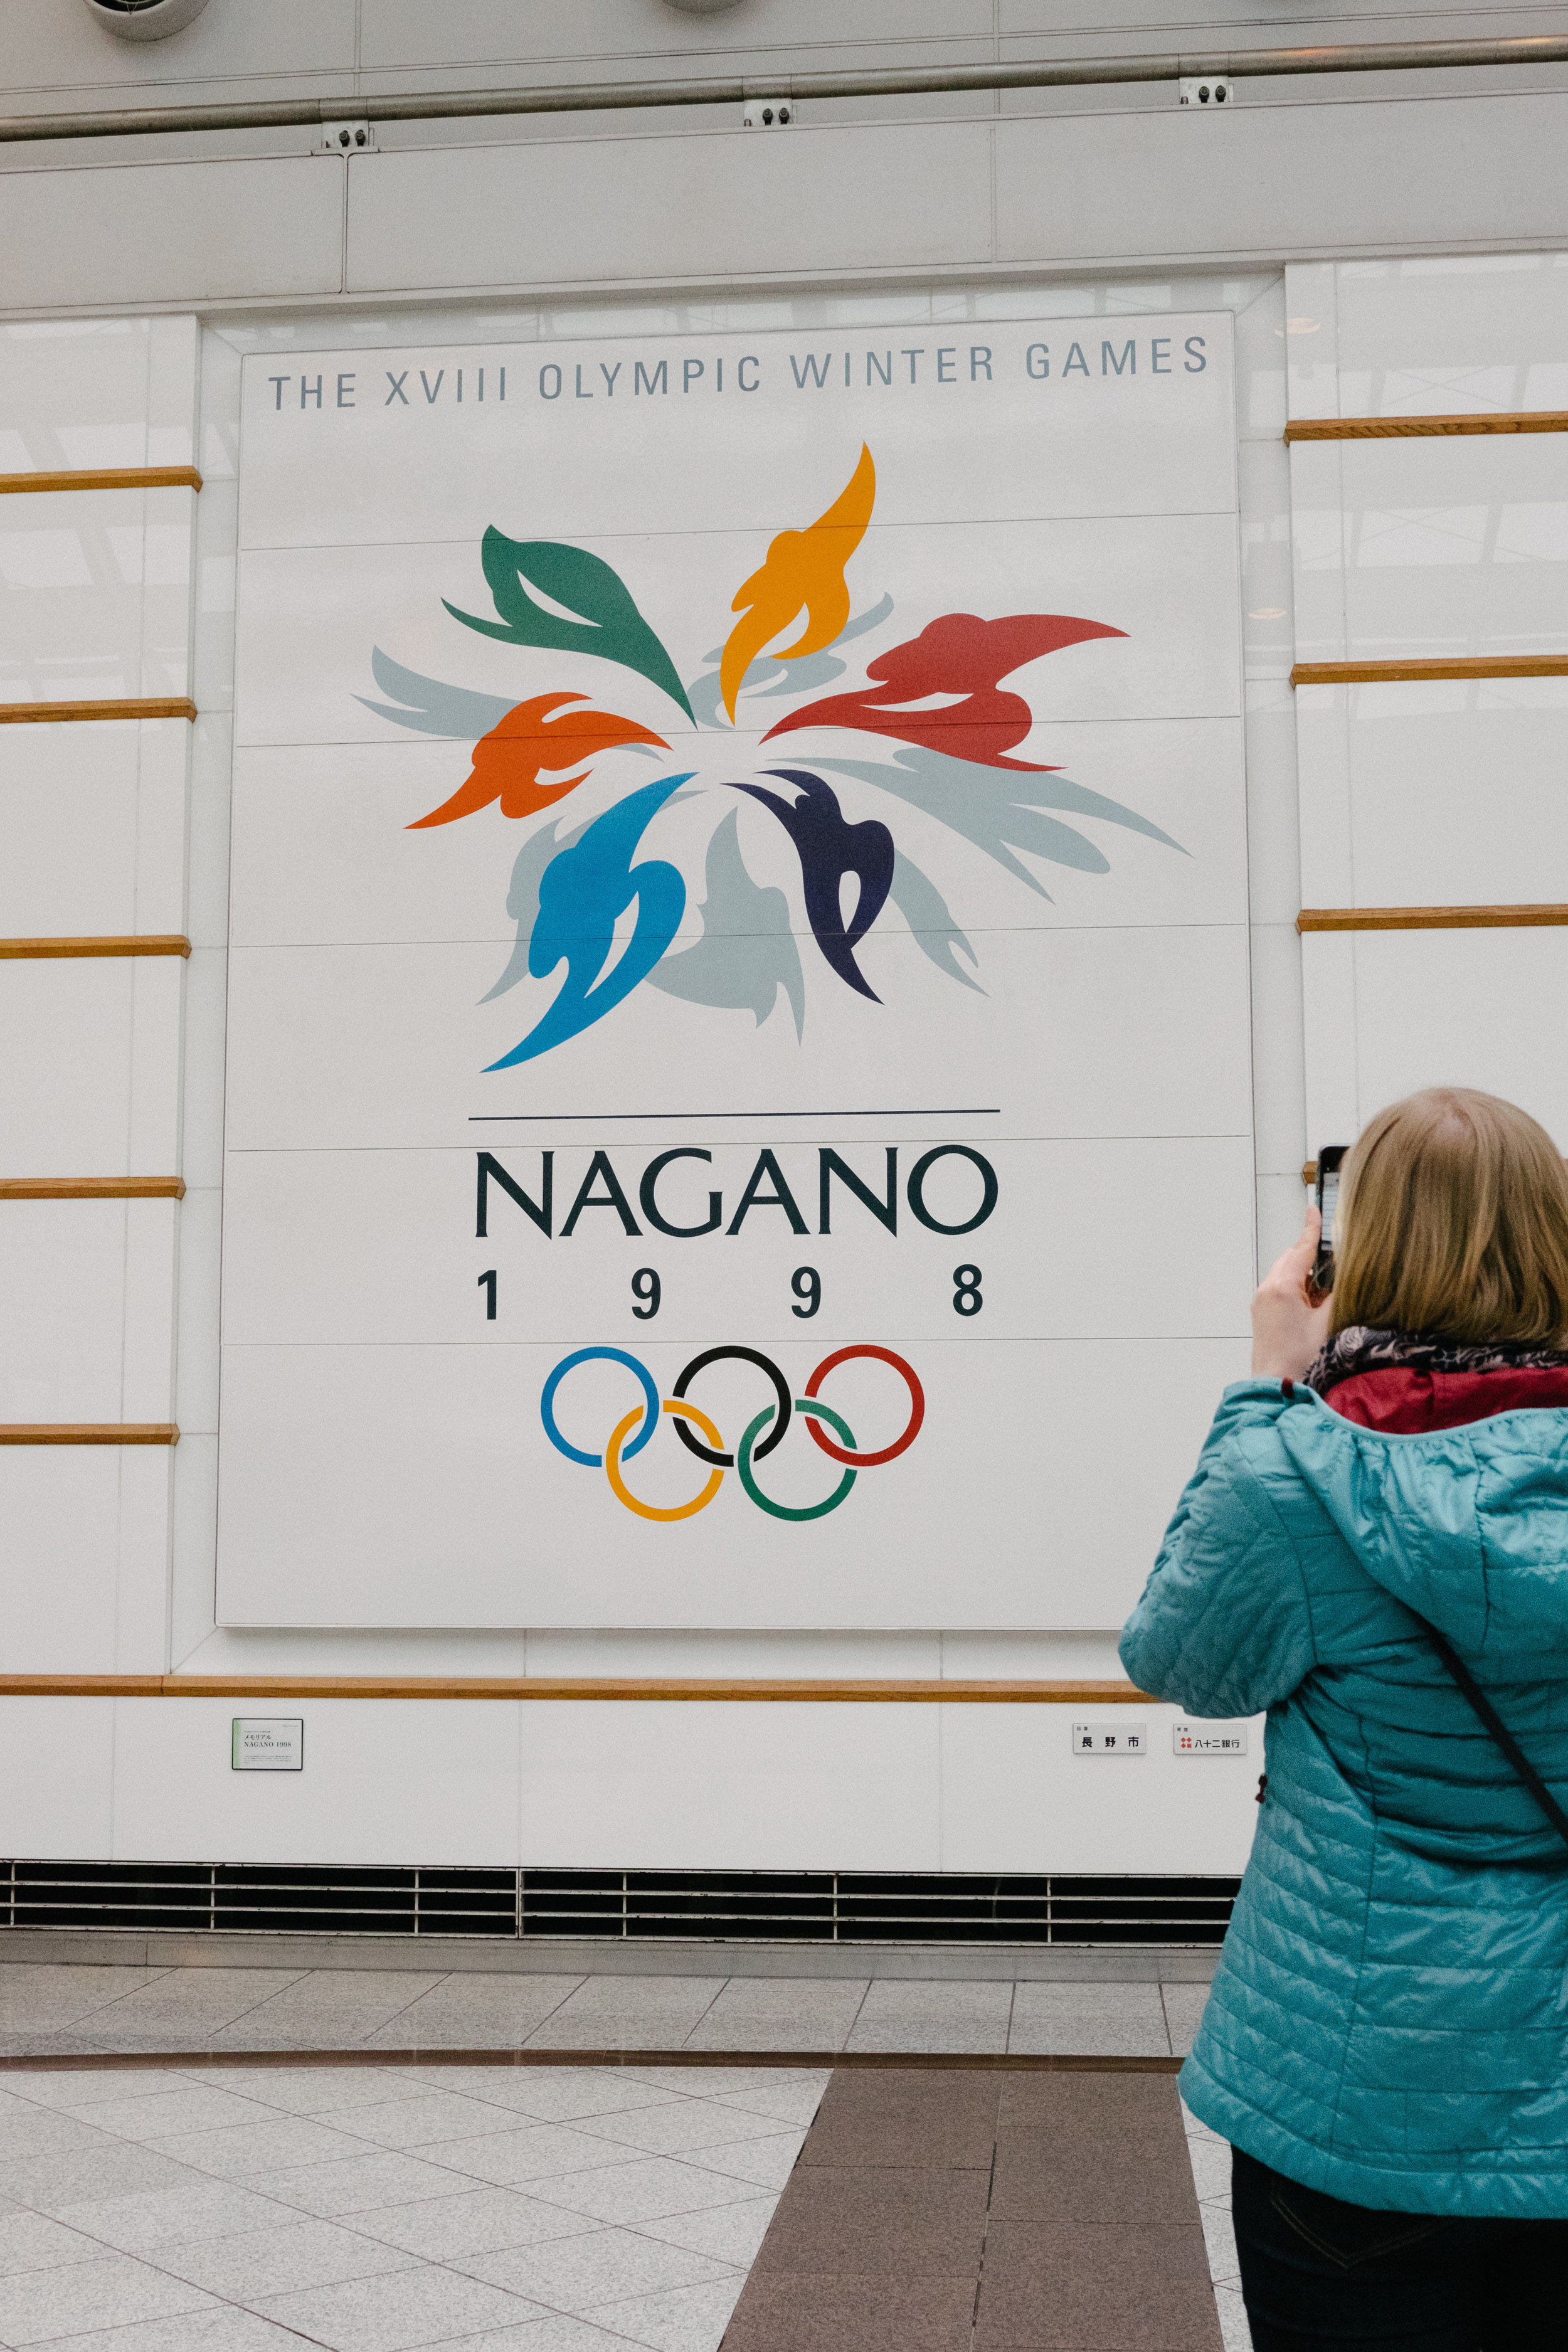 Nagano, place to be in 1998